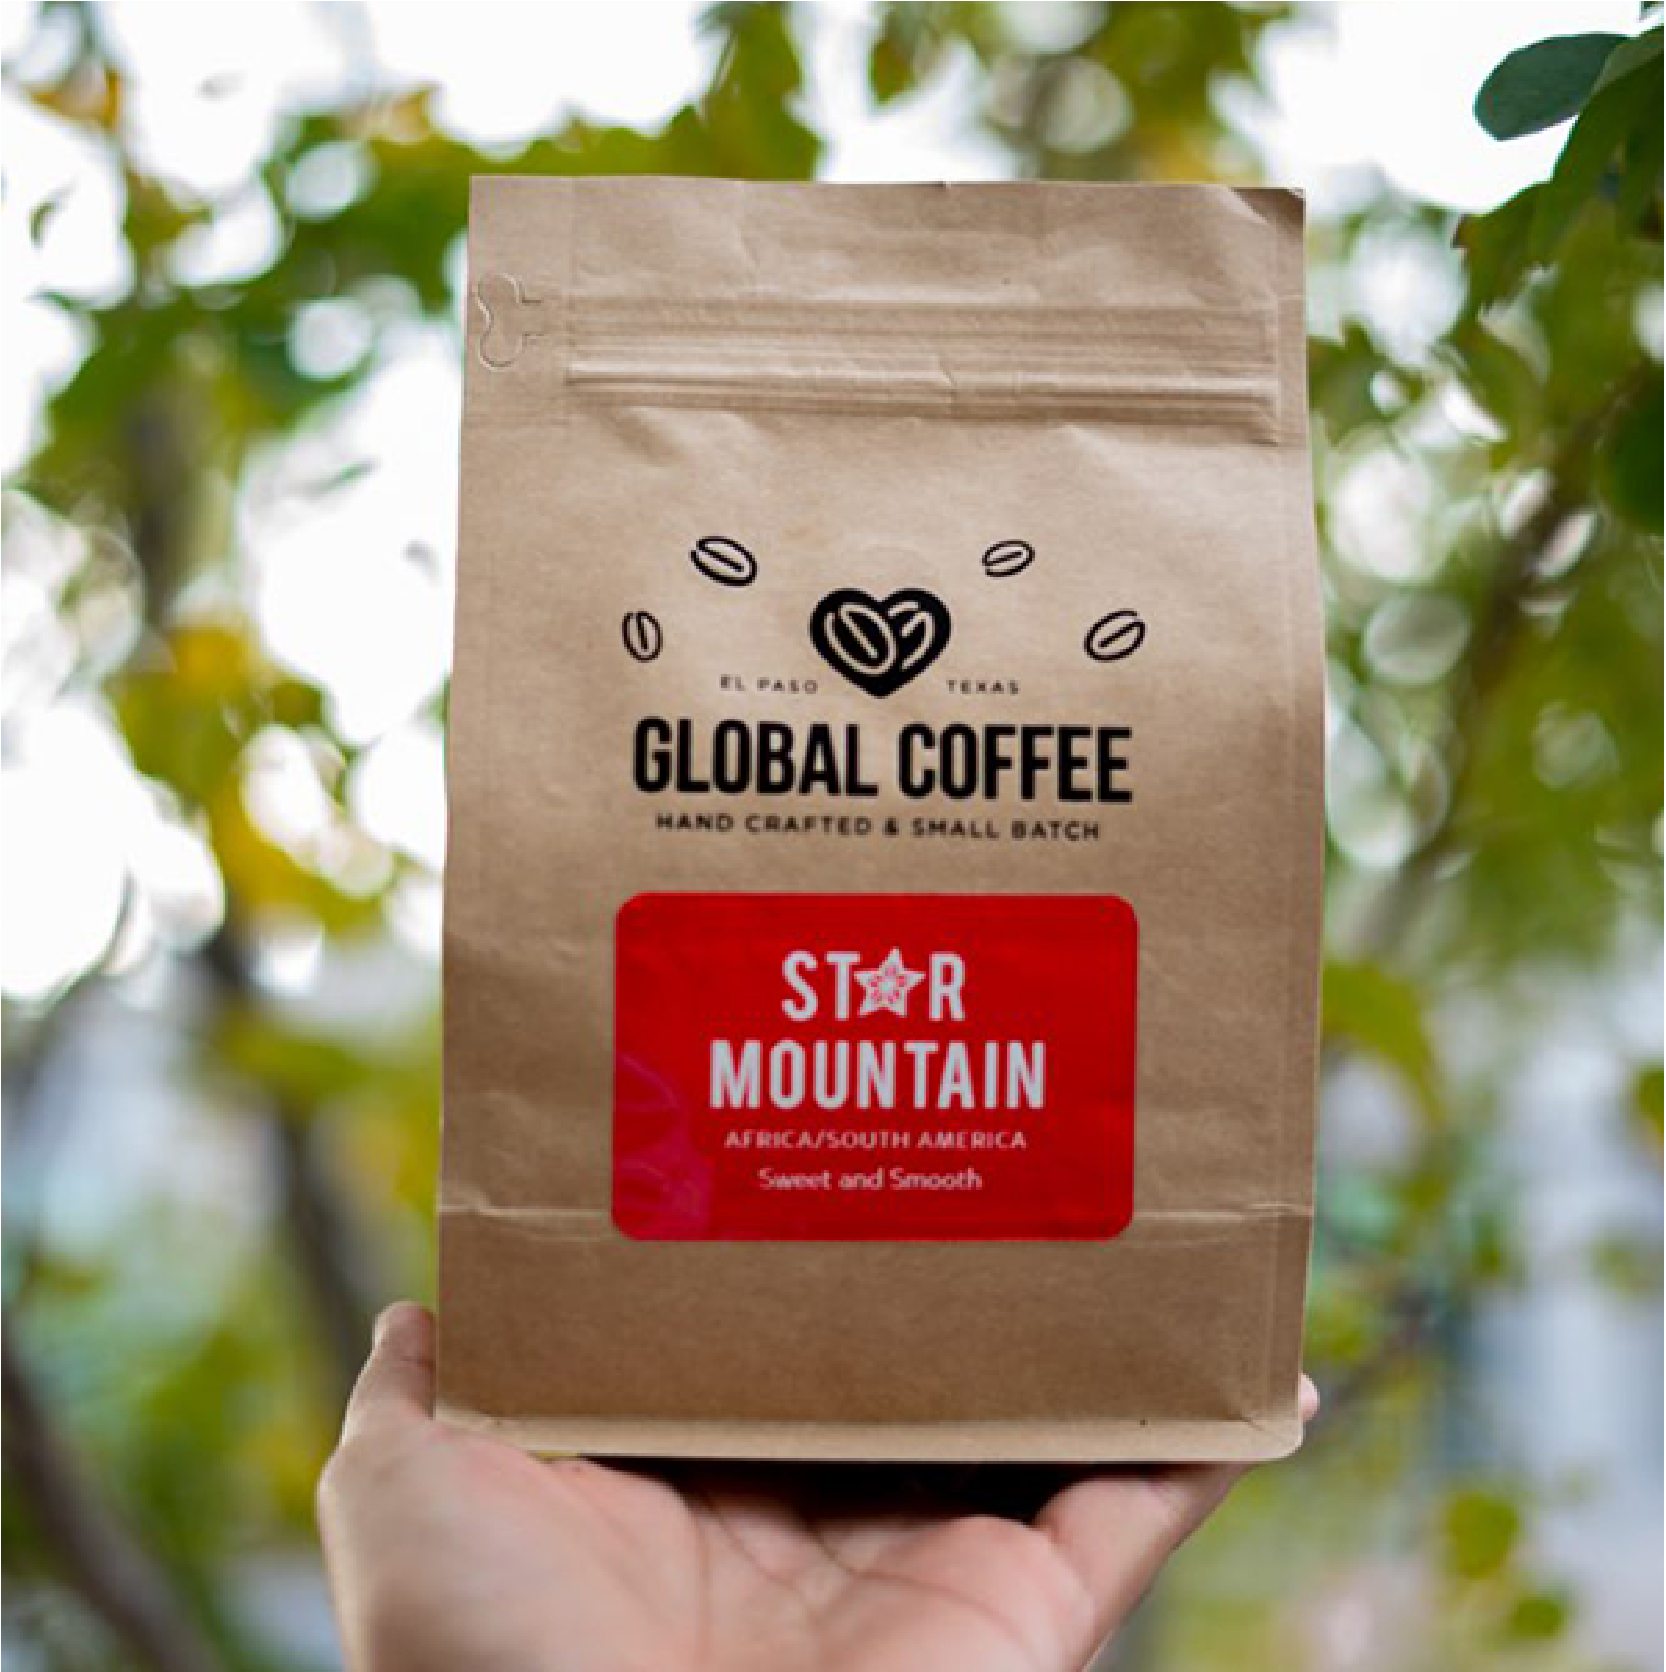 Star Mountain from Global Coffee